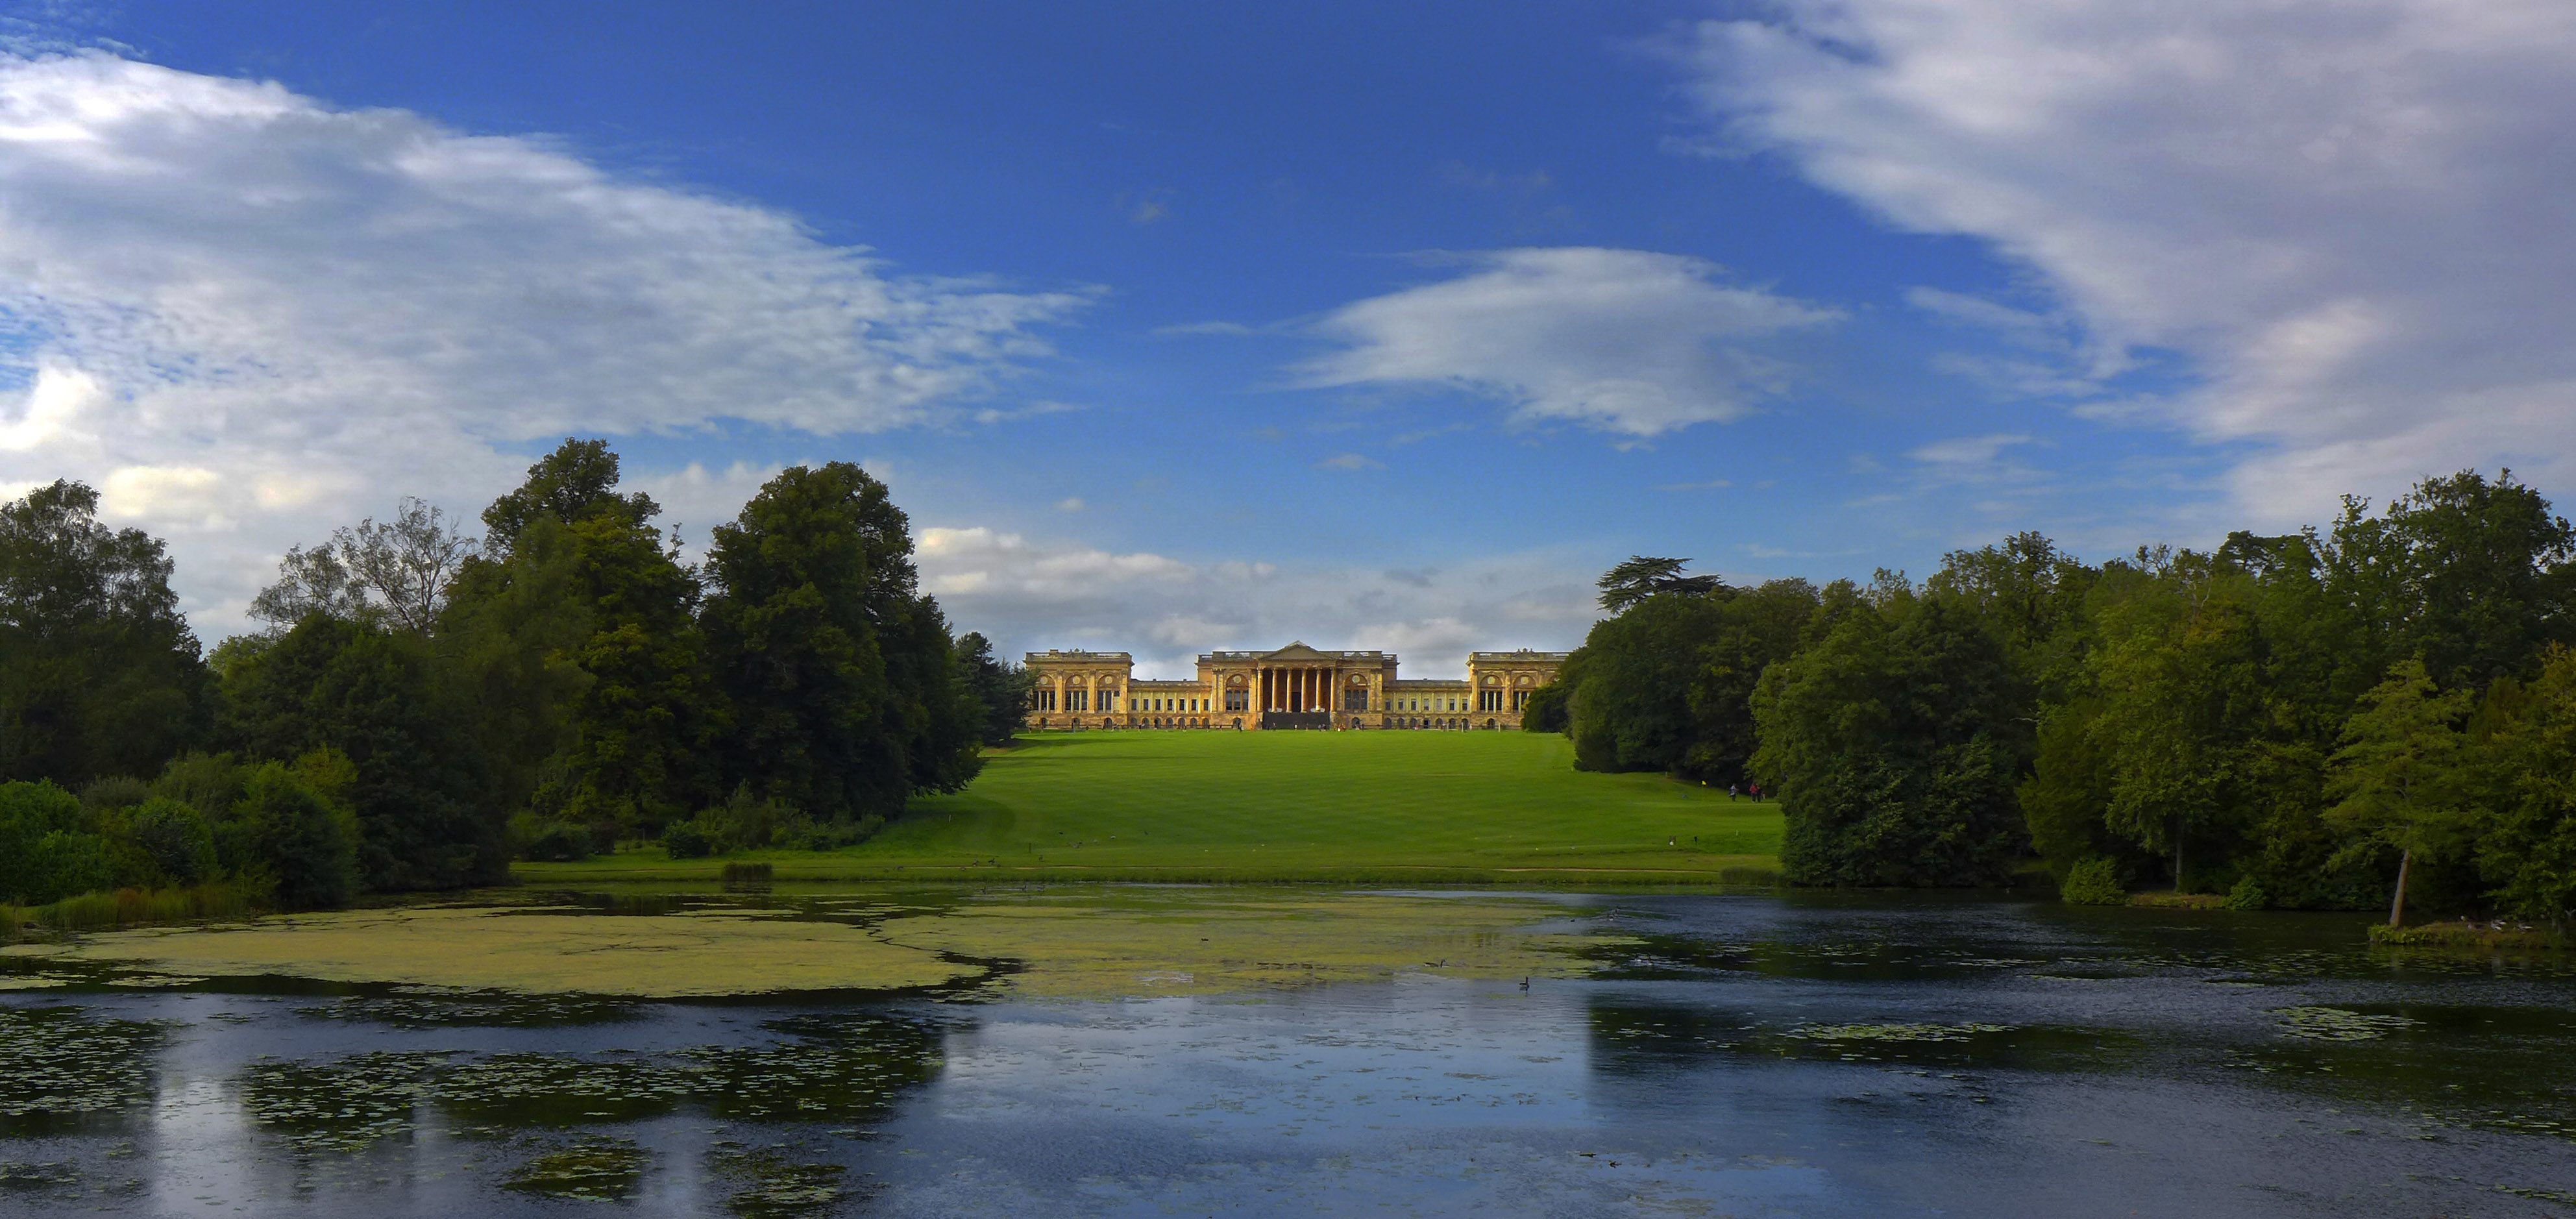 Stowe landscape gardens and monuments sat 260414 cranfield embark on a legendary journey and follow in the footsteps of 18th century tourists by immersing yourself in 250 acres of stunning informal landscape workwithnaturefo